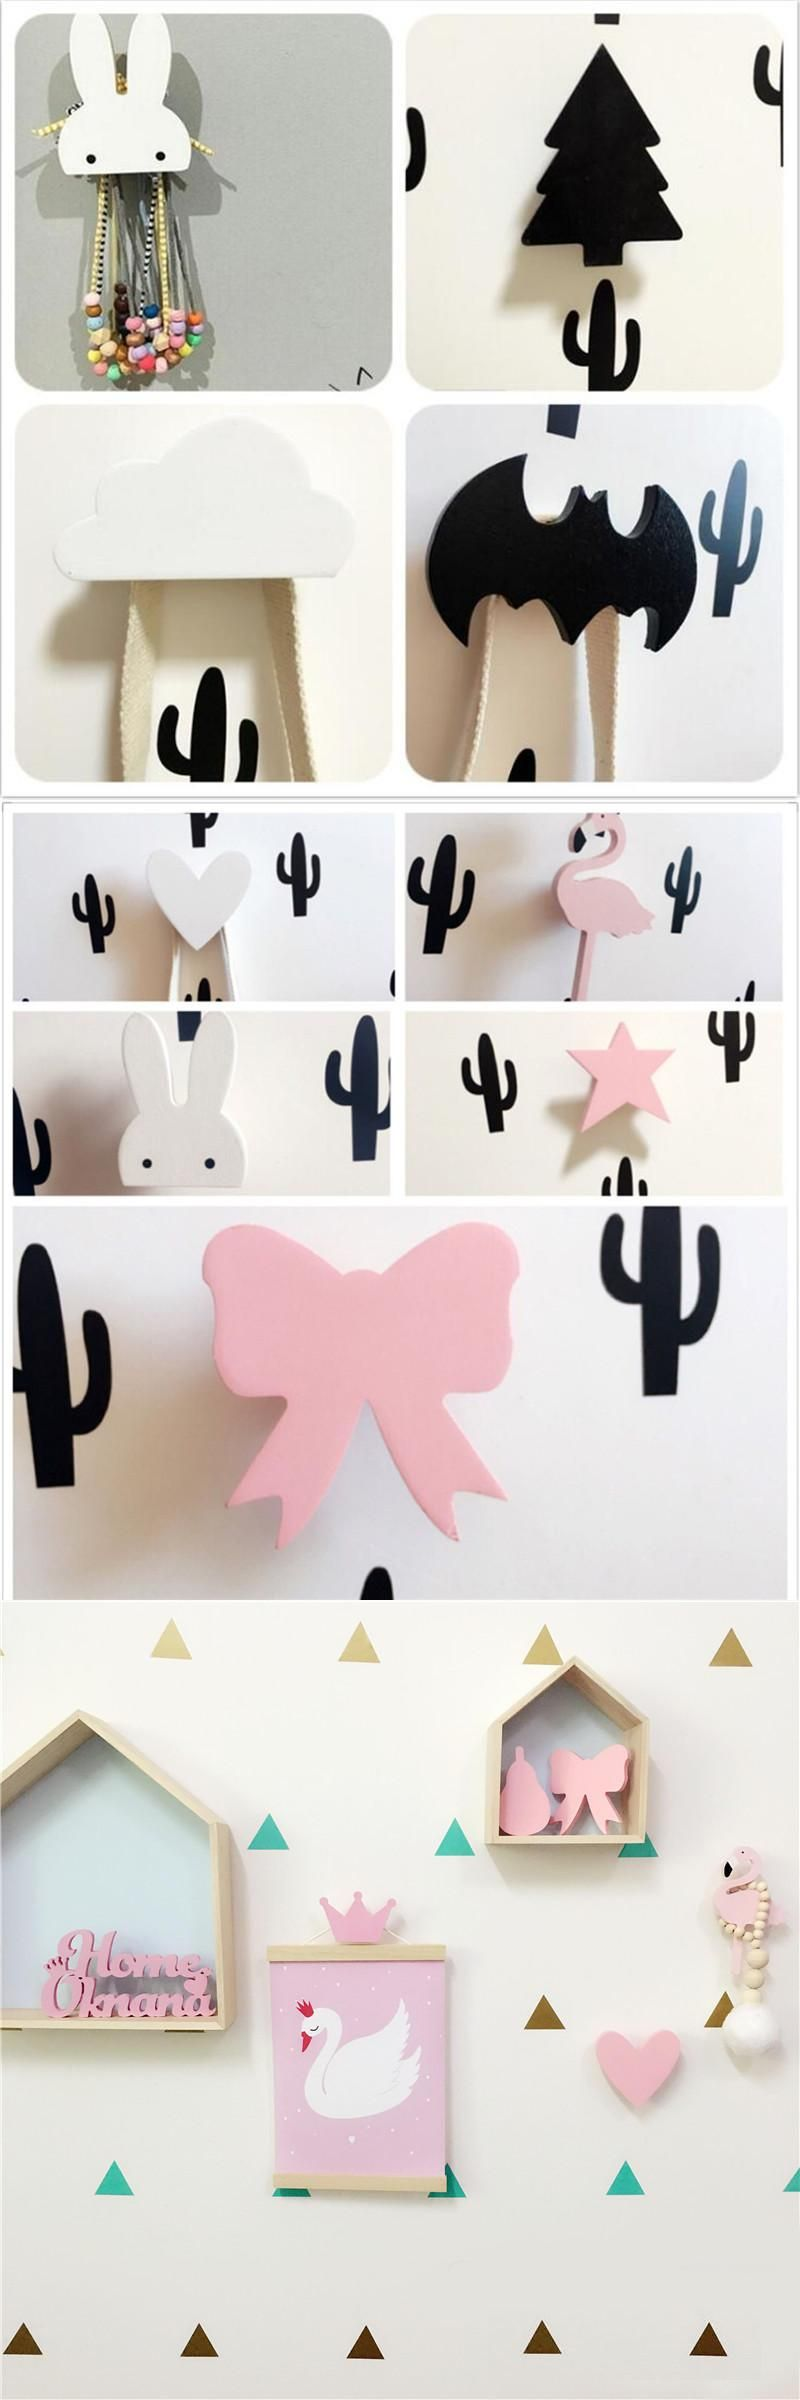 Visit to buy baby child kids room wooden wall hooks decorative visit to buy baby child kids room wooden wall hooks decorative door holder hanger amipublicfo Choice Image